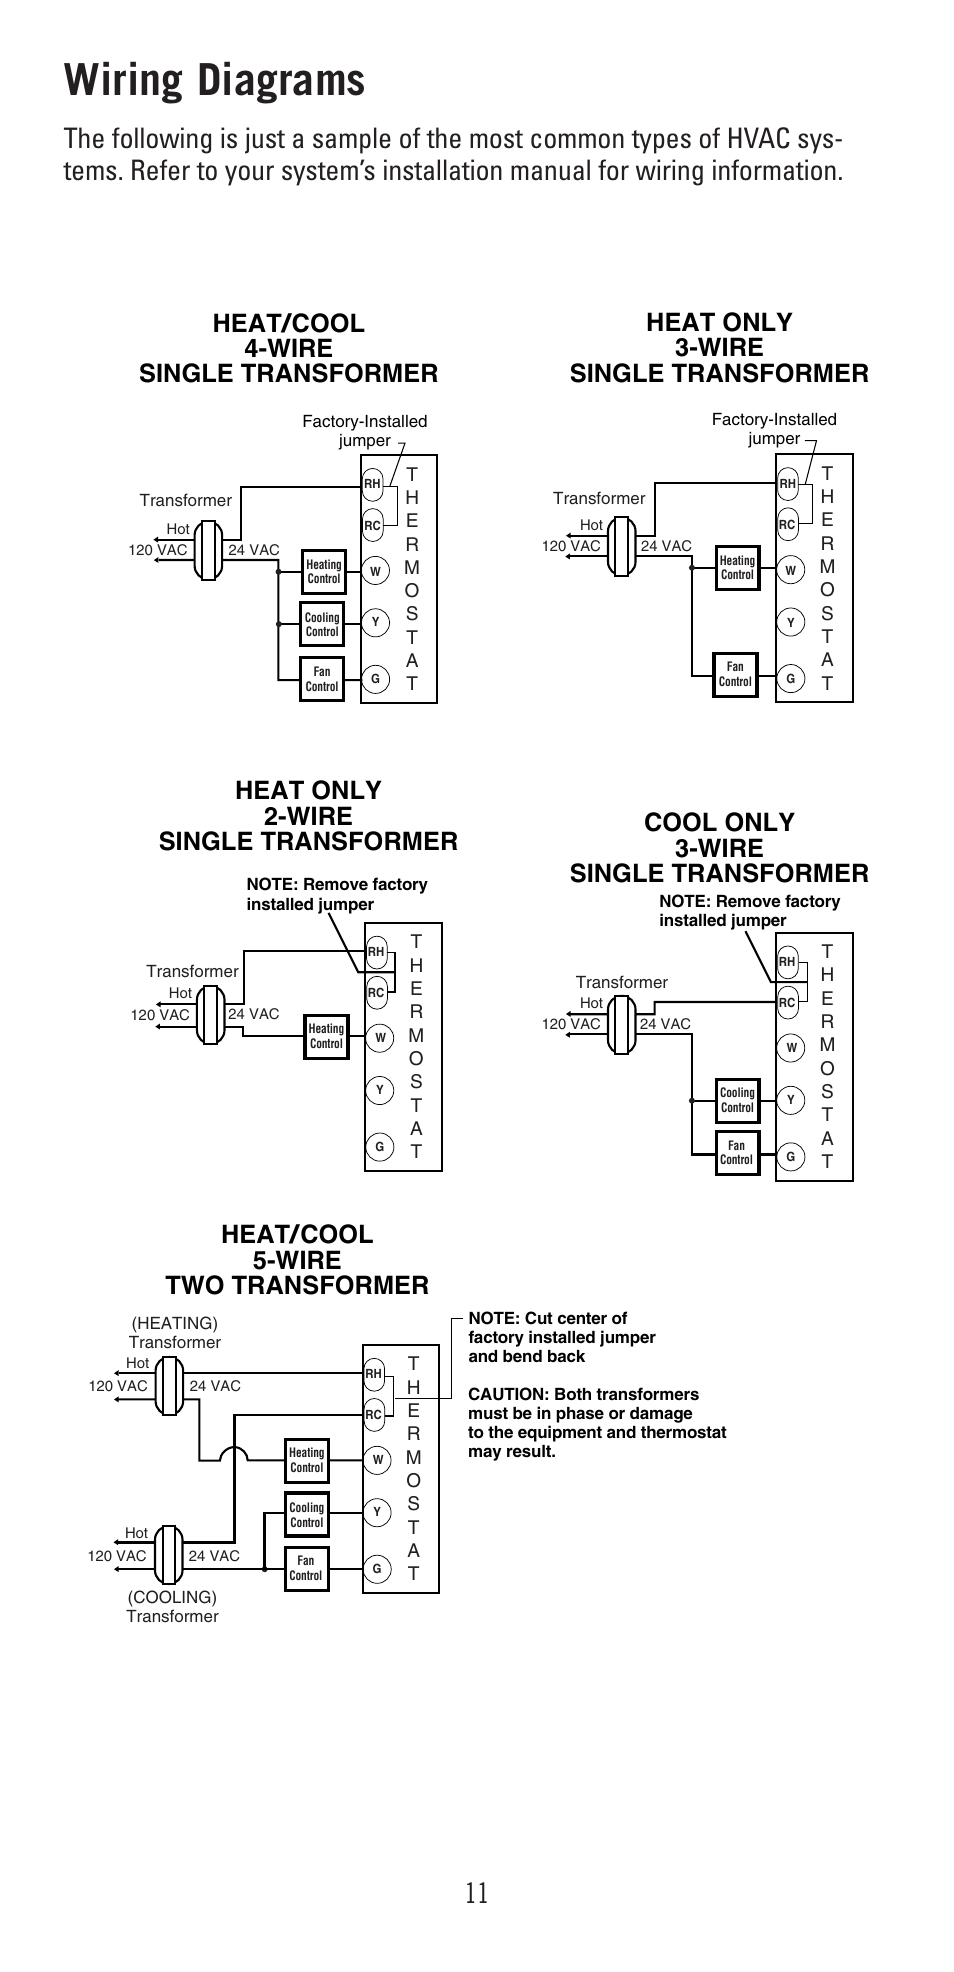 Robertshaw 9600 Thermostat Wiring Diagram Library Heat Pump Diagrams Model 9520 User Manual Page 11 12